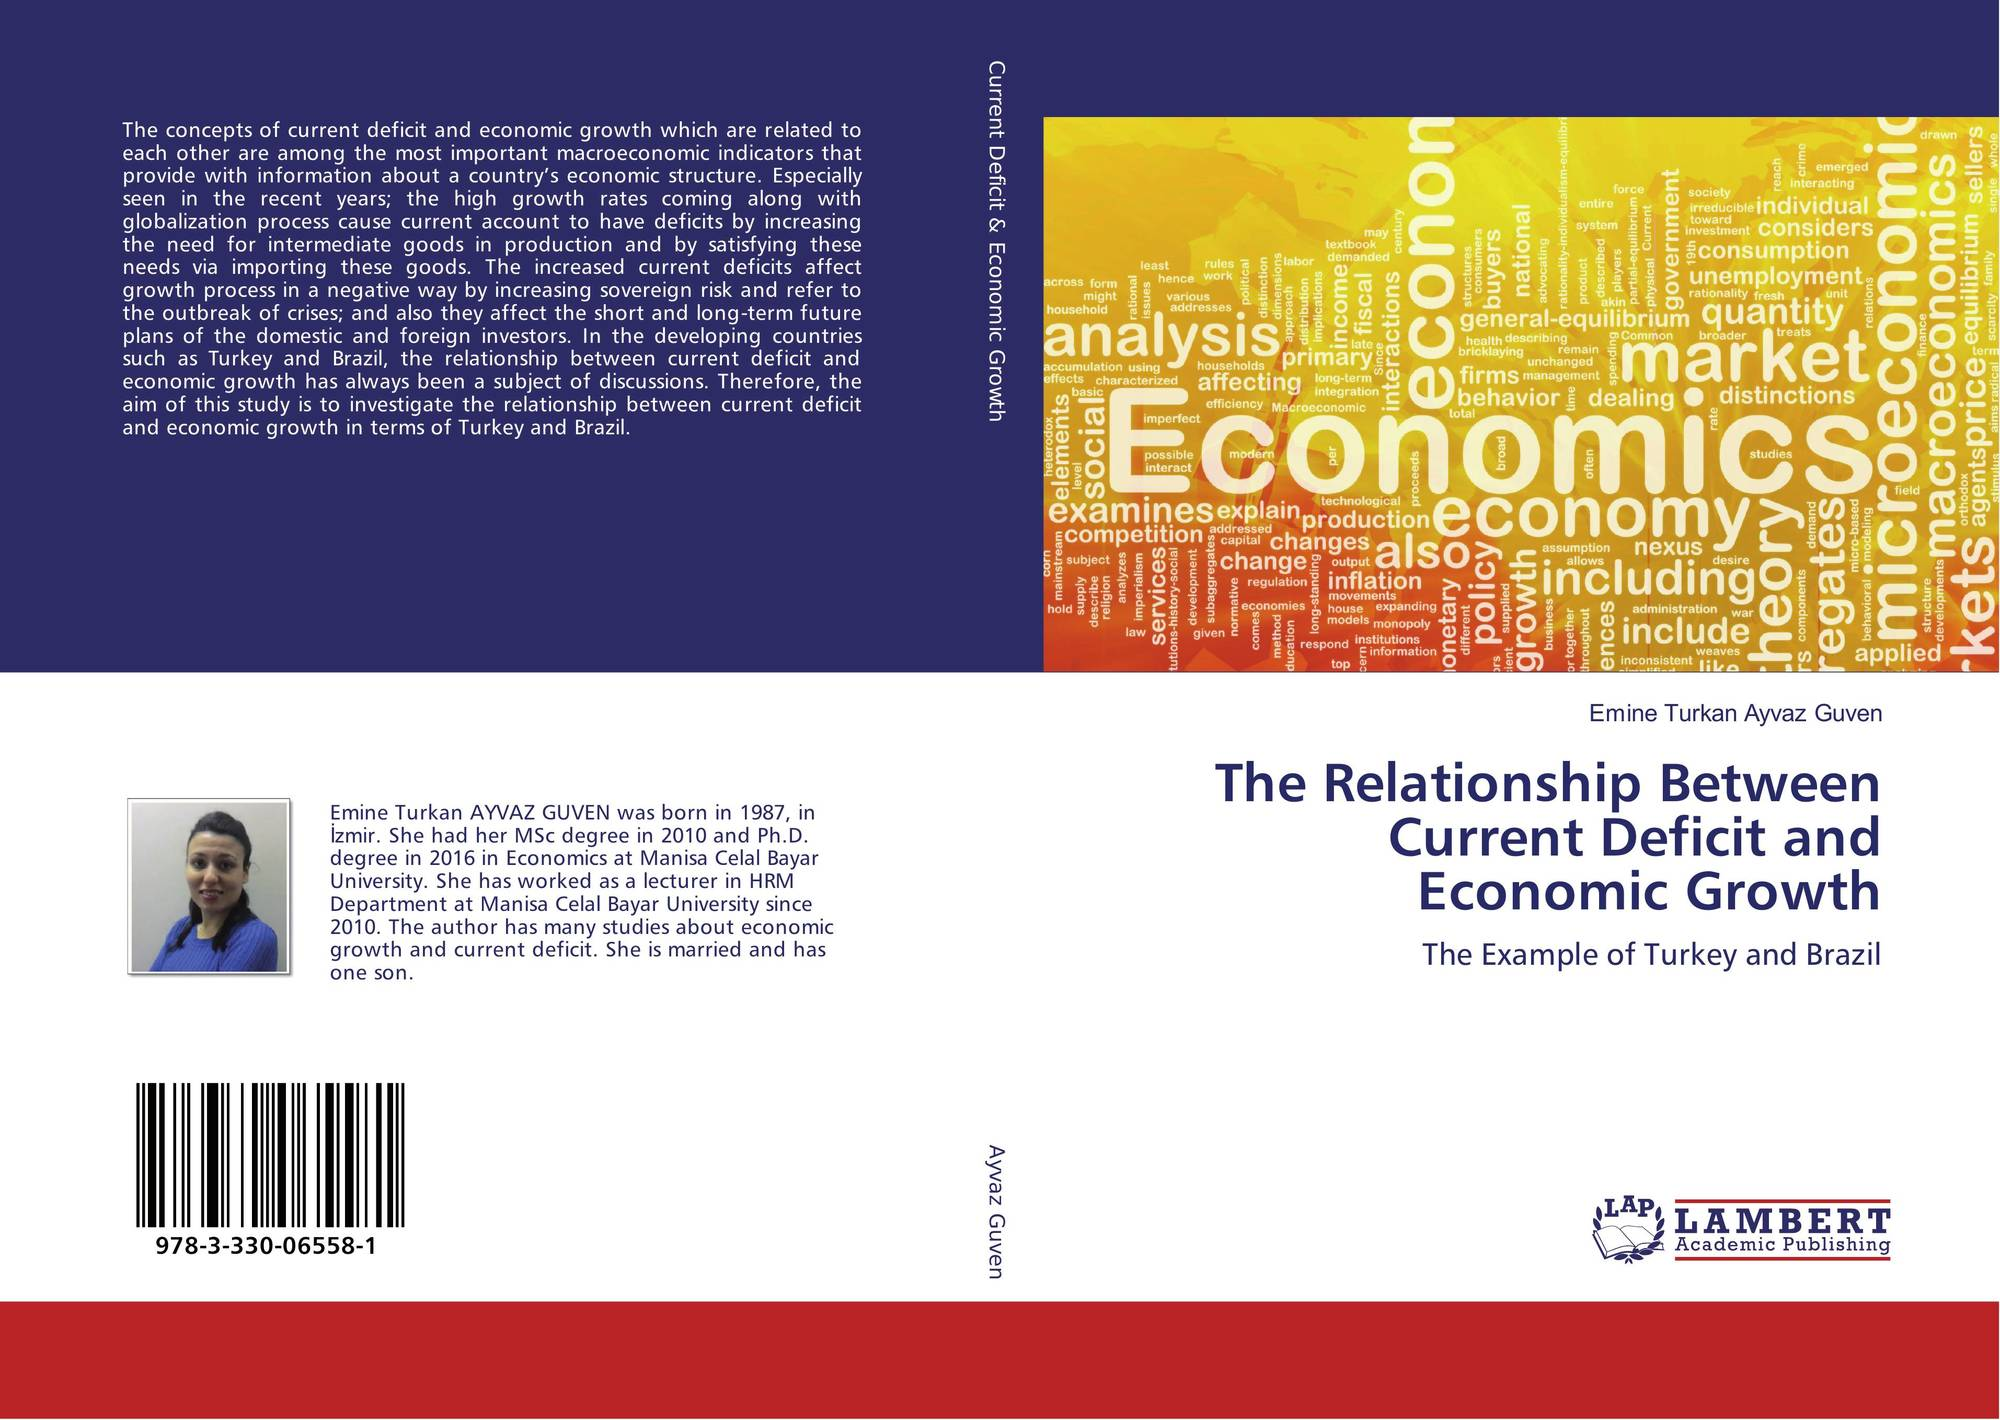 causal relationship between domestic savings and economic growth